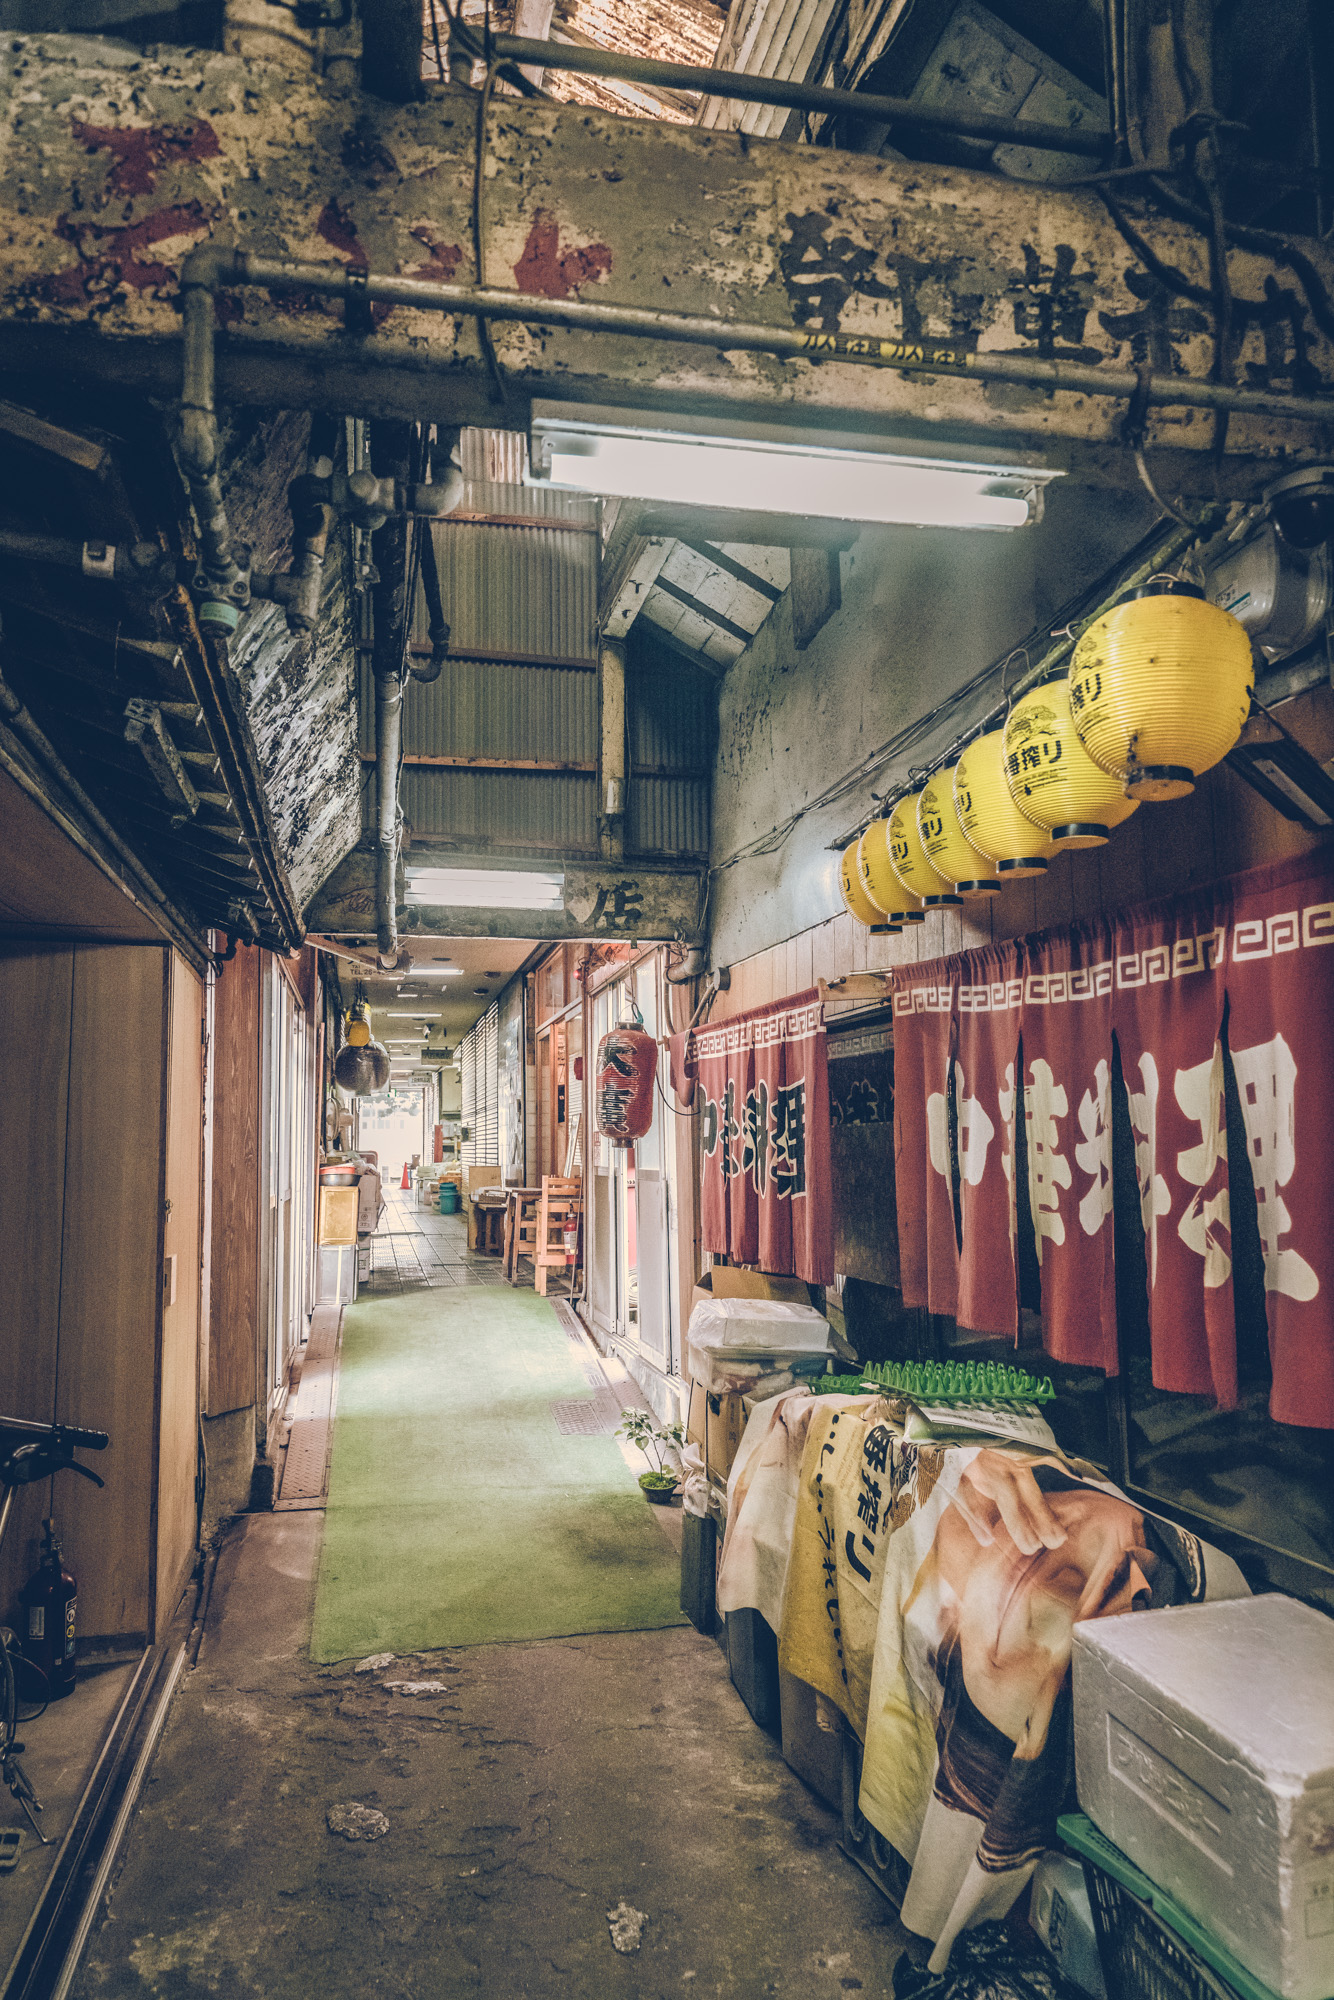 The Tsubakii Market in Japan